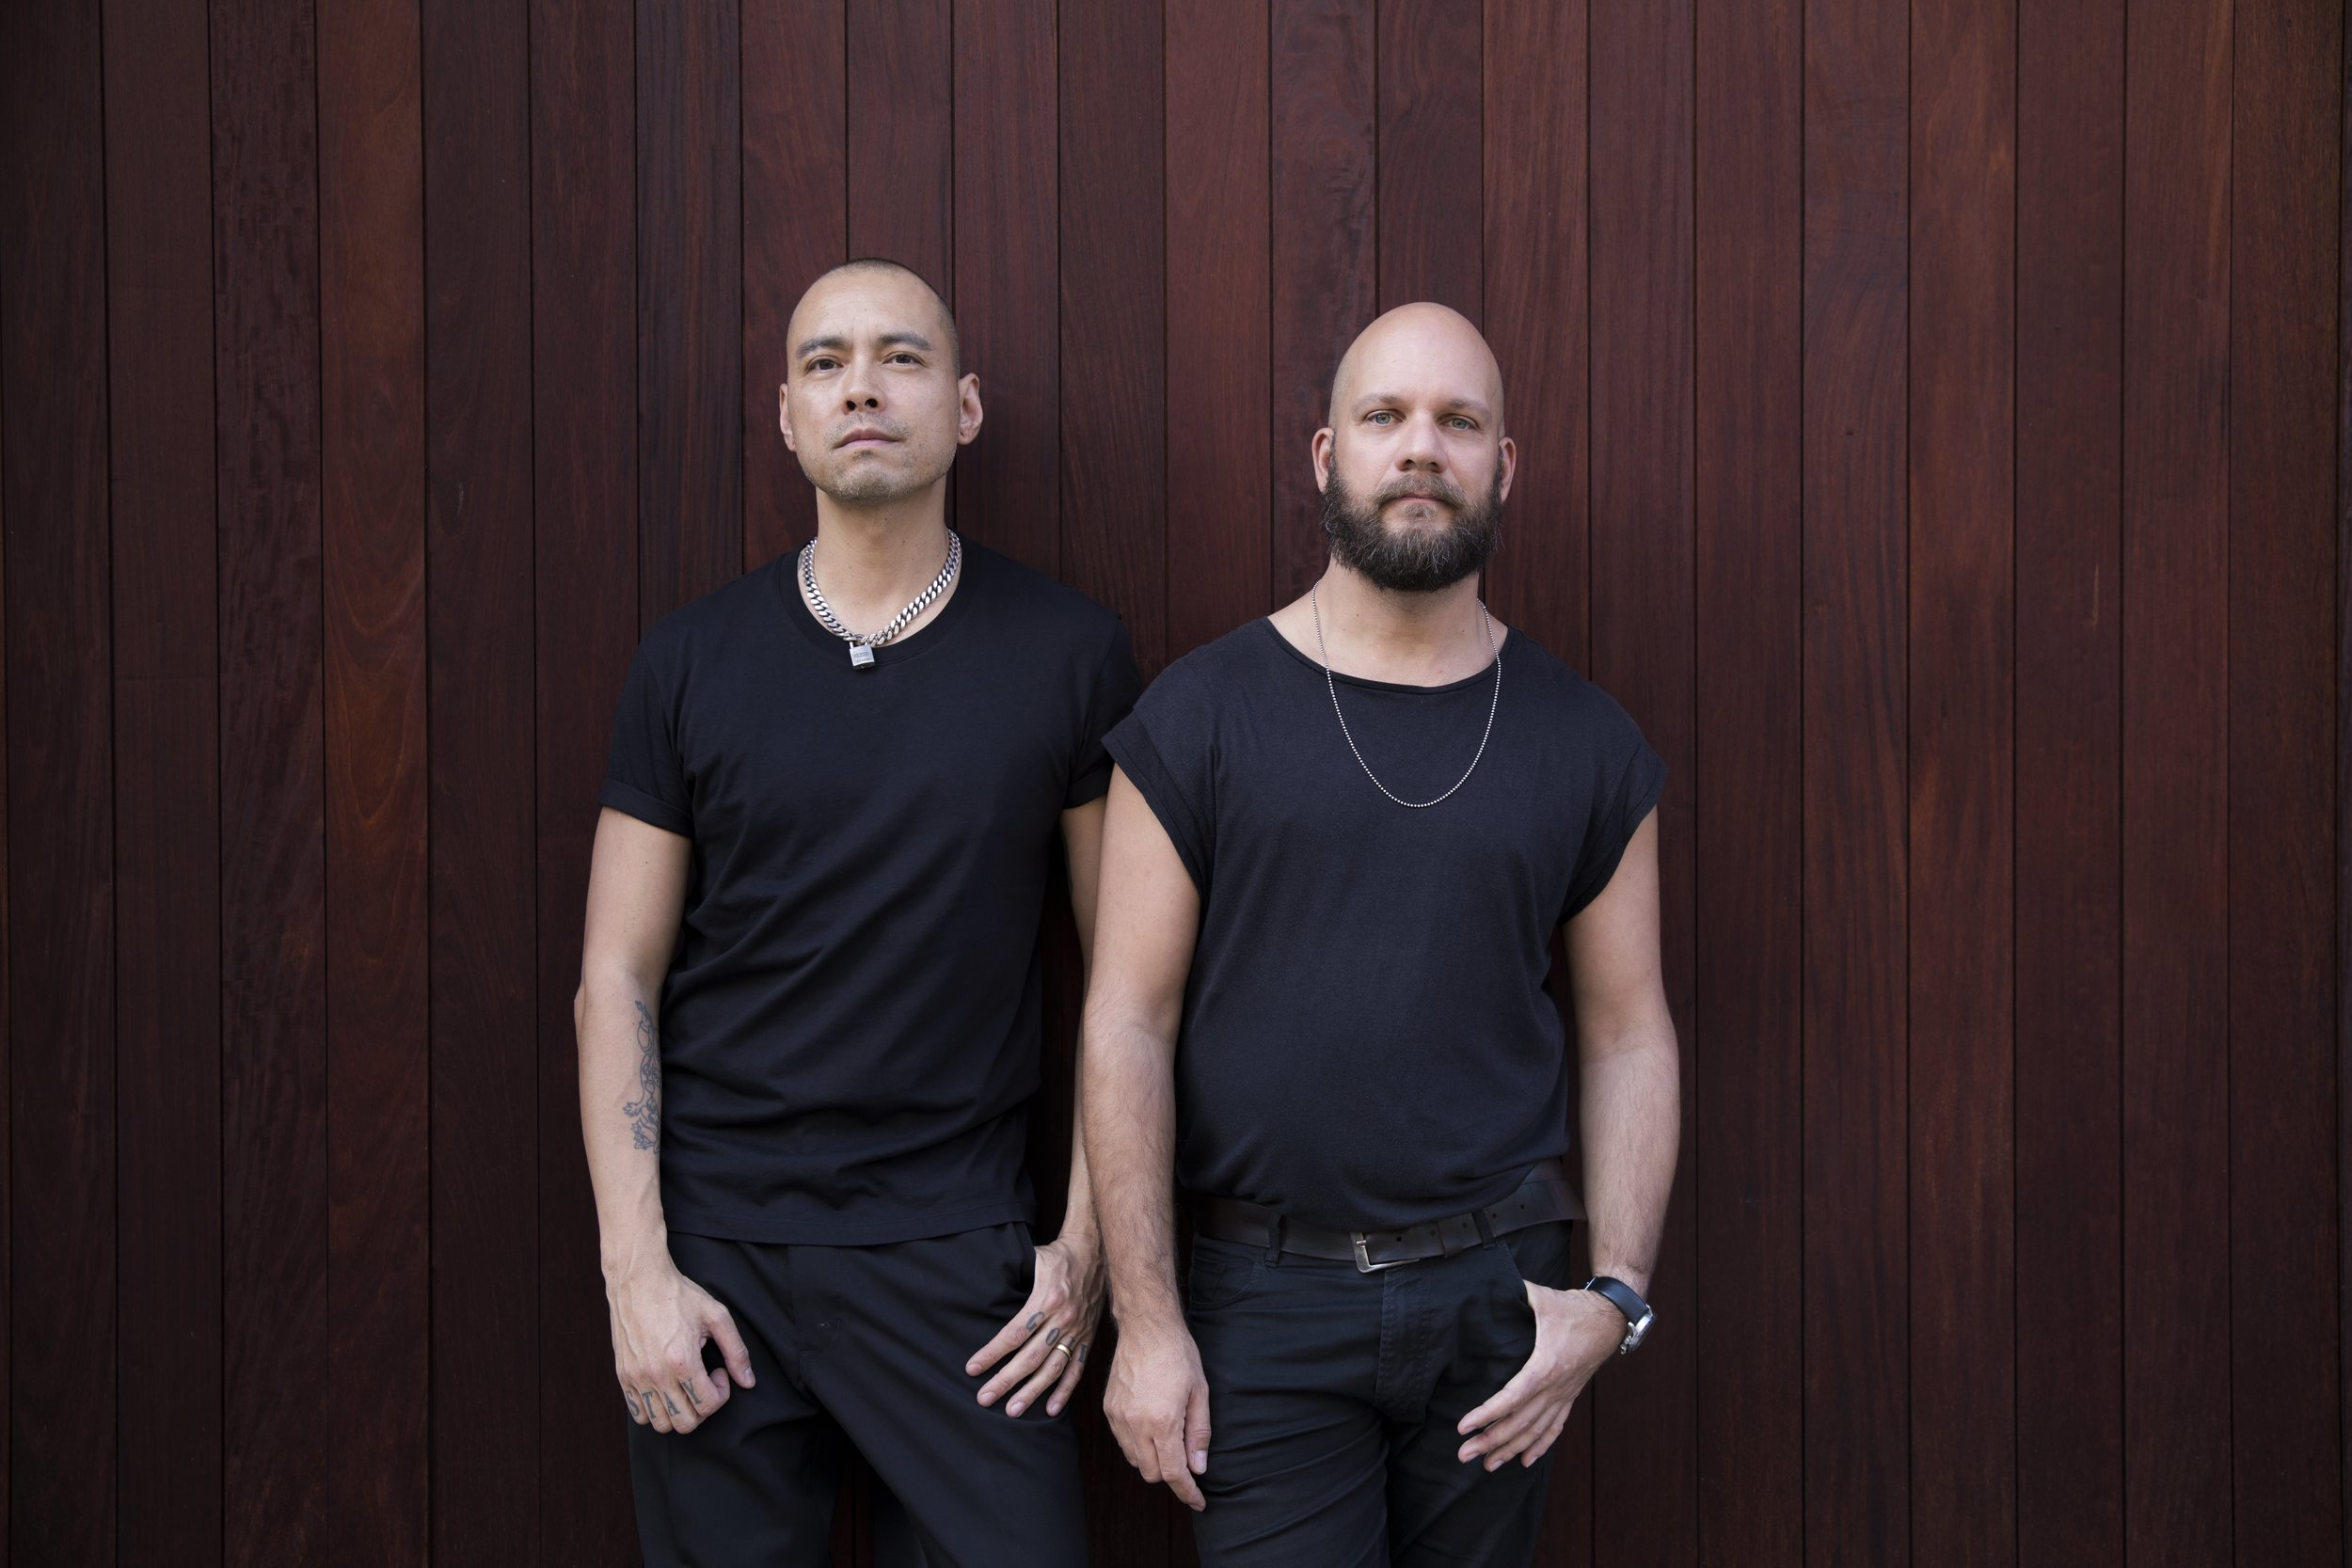 Ted Young-Ing and Stefan Kehl. Courtesy of AER